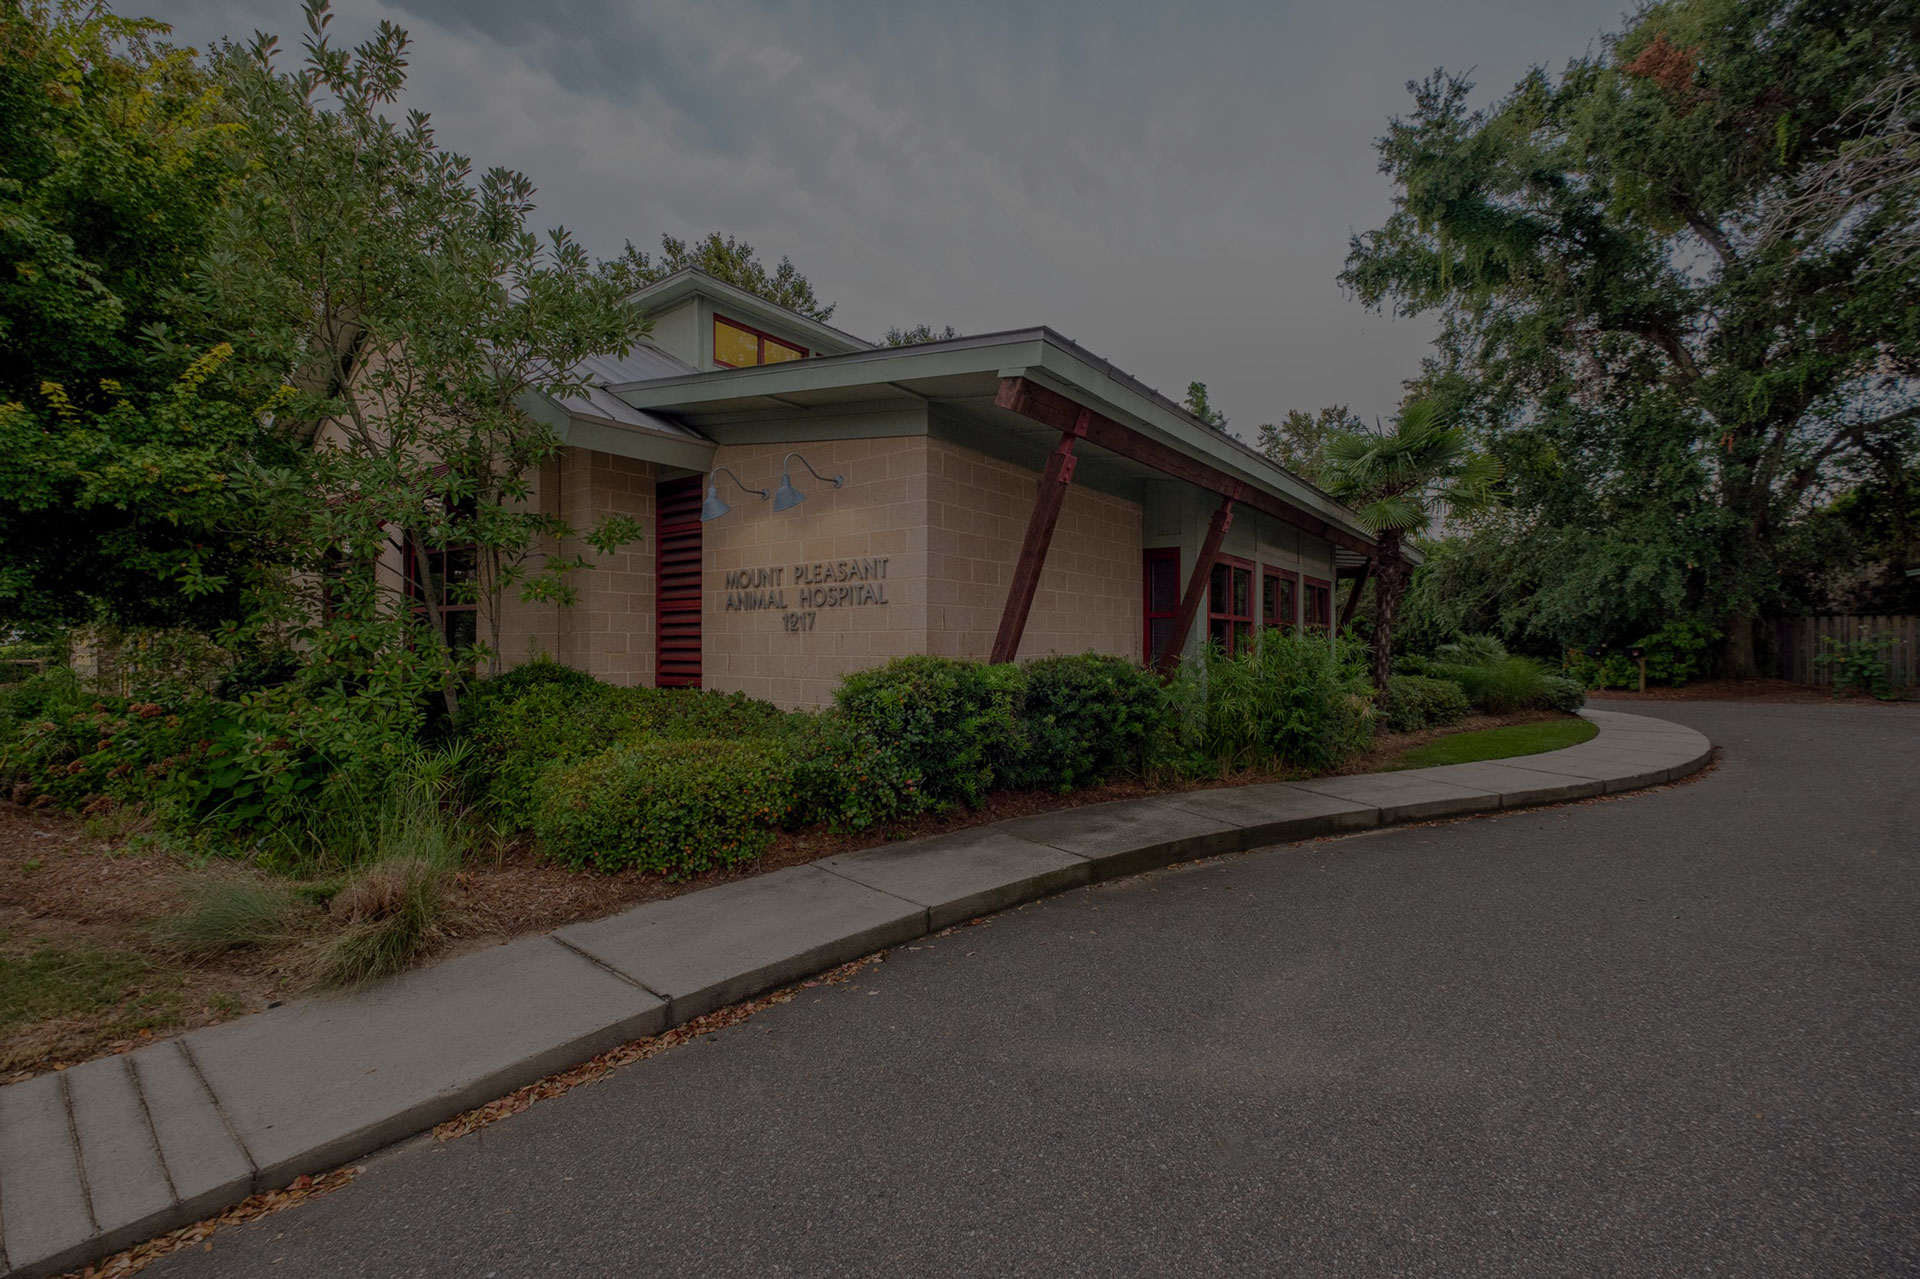 mount pleasant animal hospital exterior